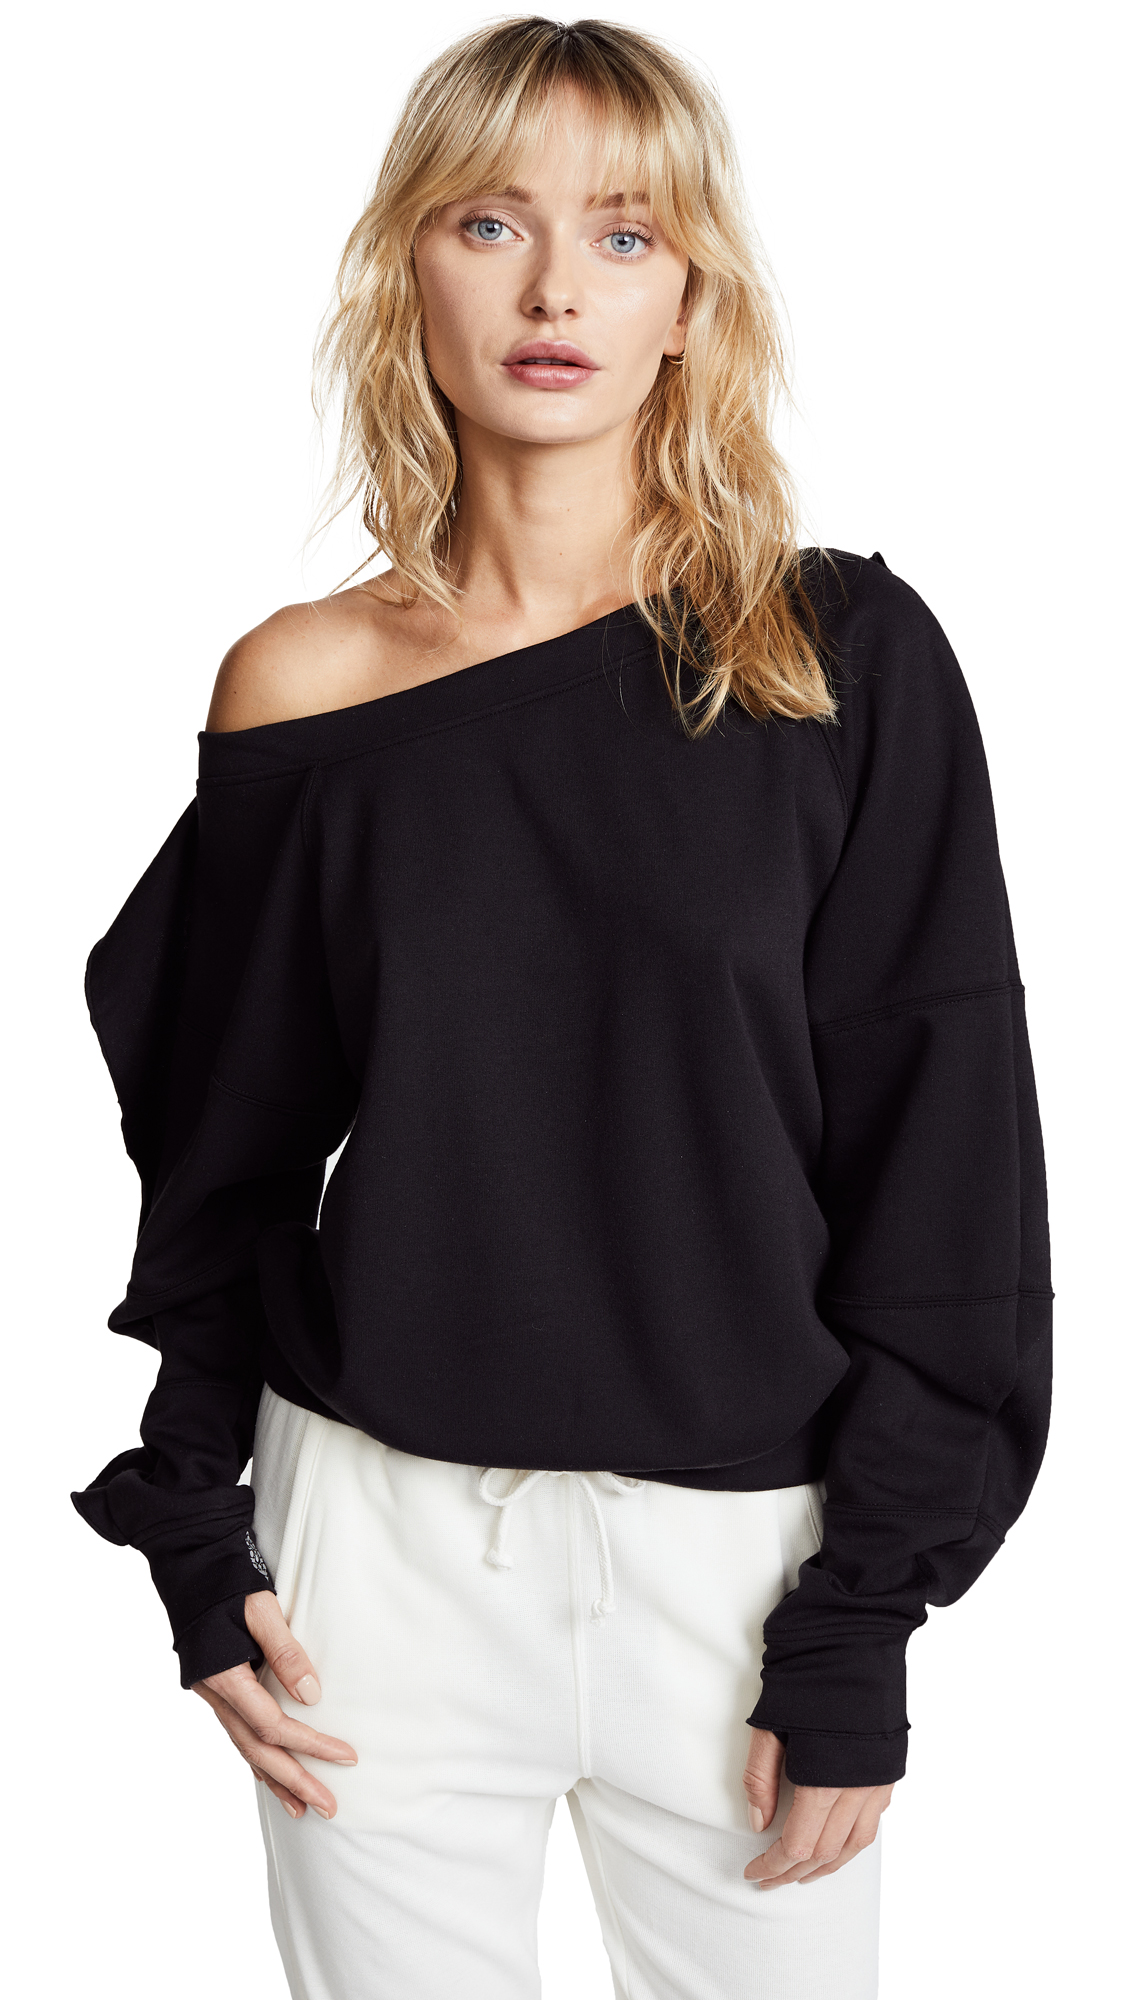 Free People Movement Flounce Tech Top In Black